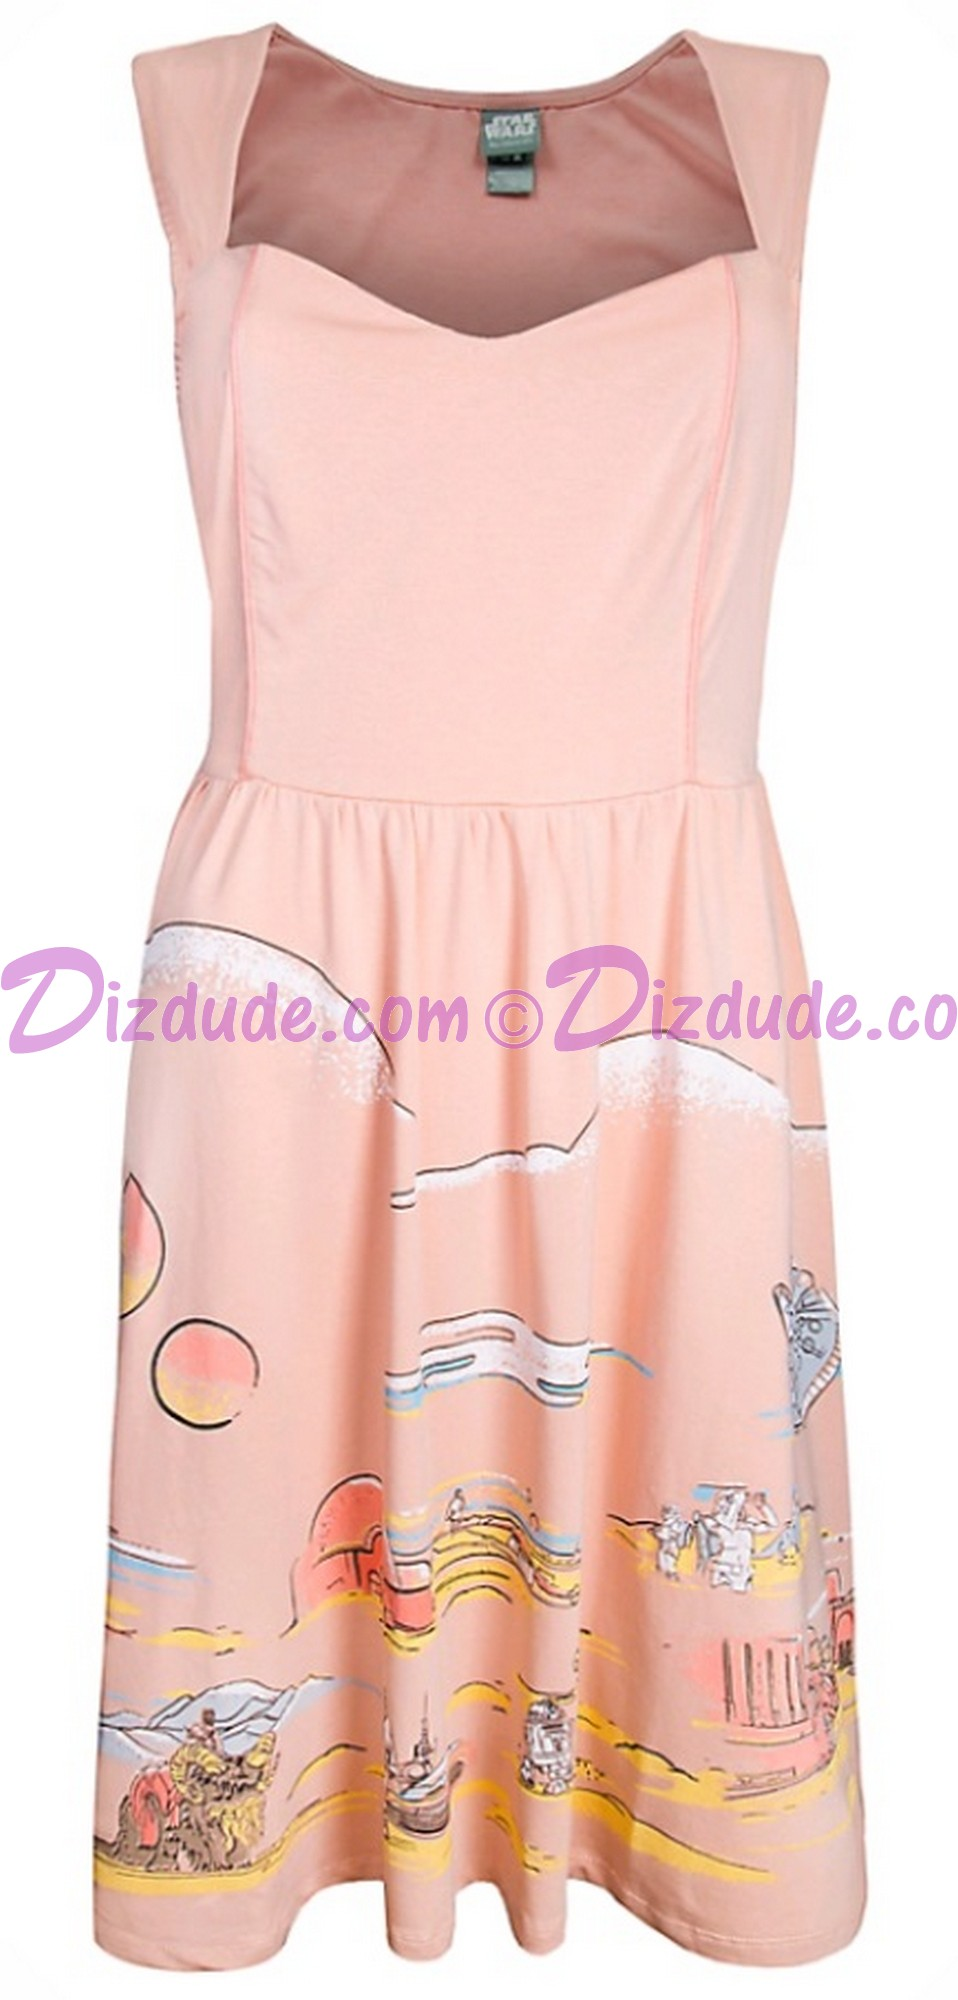 Disney Star Wars Tatooine Vintage 50s Style Ladies Dress © Dizdude.com